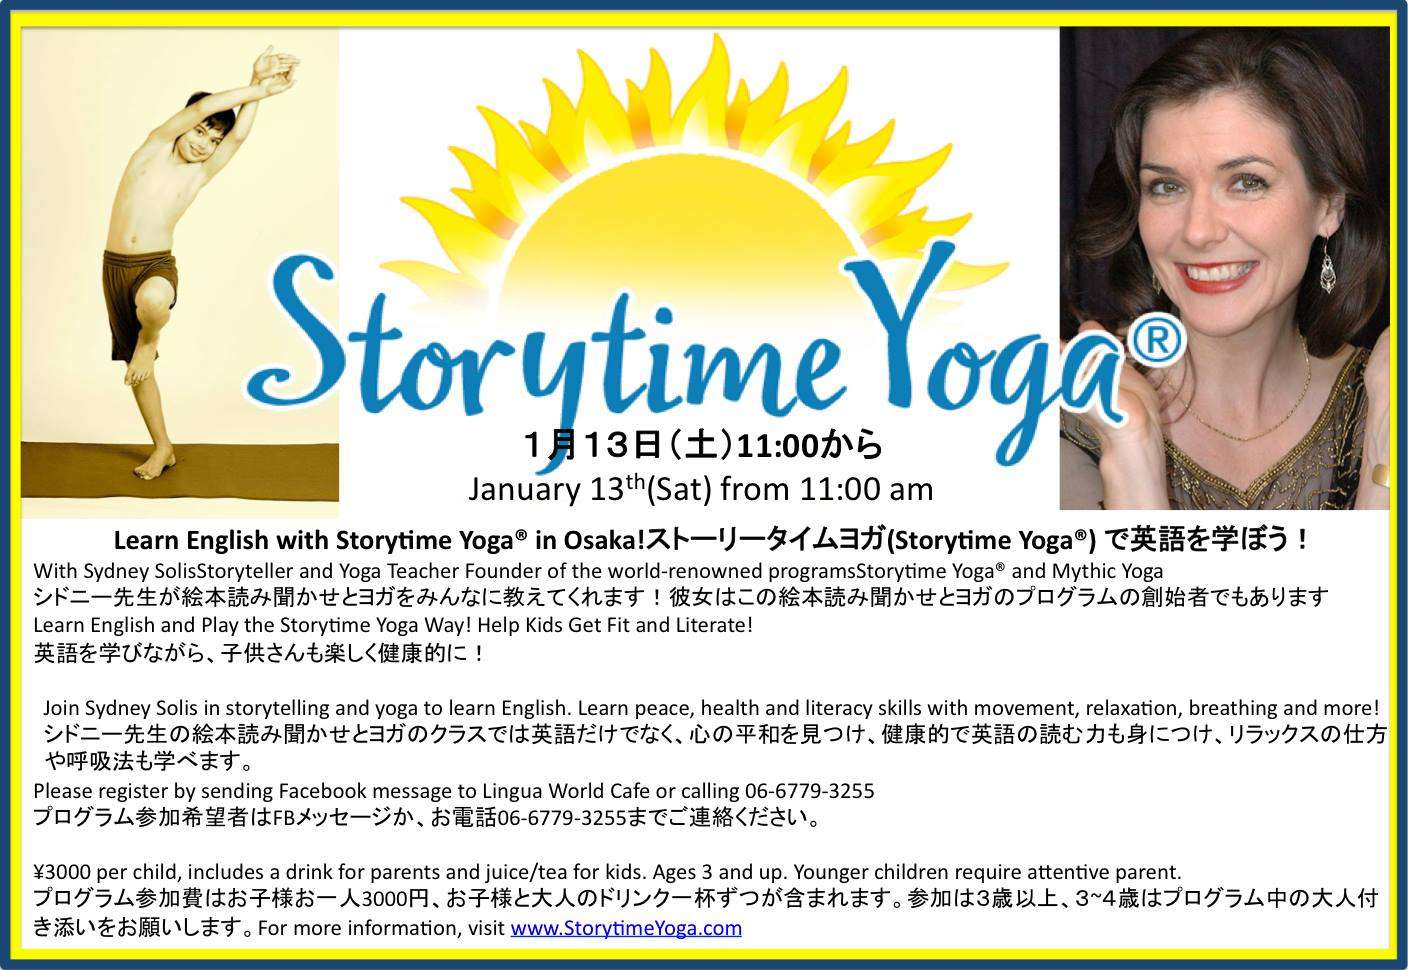 Storytime Yoga for Kids at Lingua World Cafe in Osaka, Japan